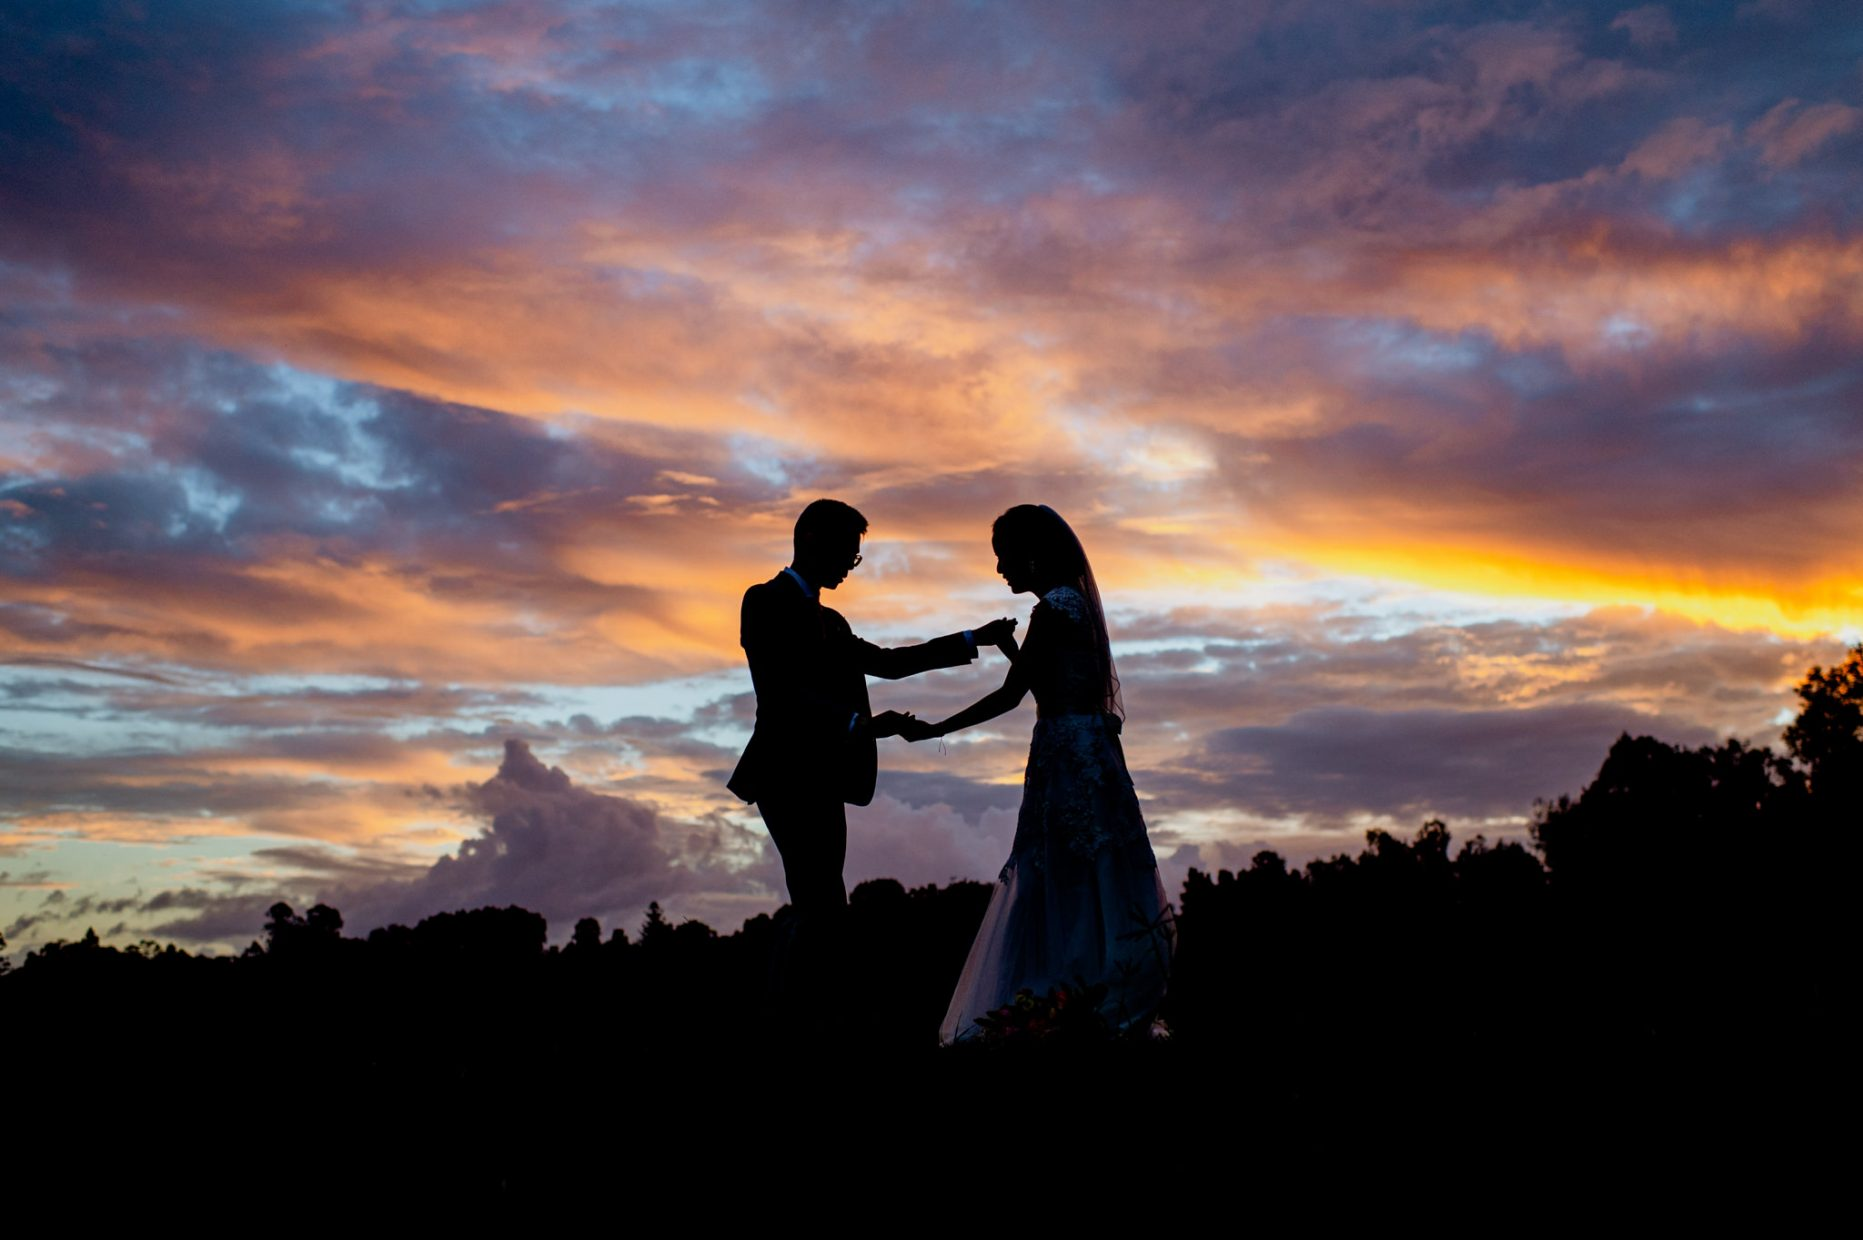 Silhouette of a man and woman dancing together in front of a cloudy sky with orange blue and purple colours